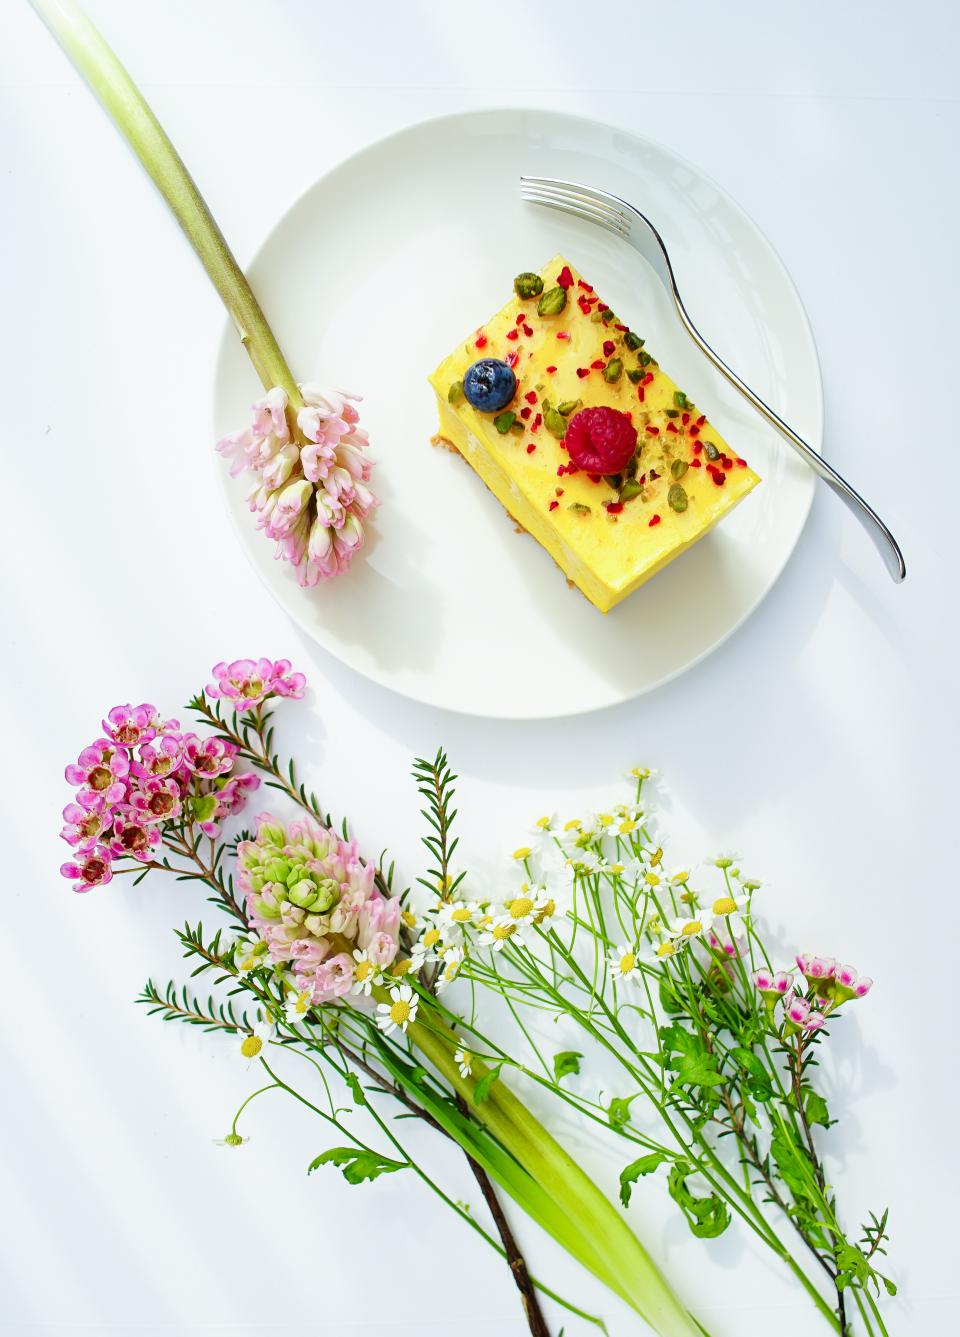 colorful flower plant nature display white plate fork food dessert sweets